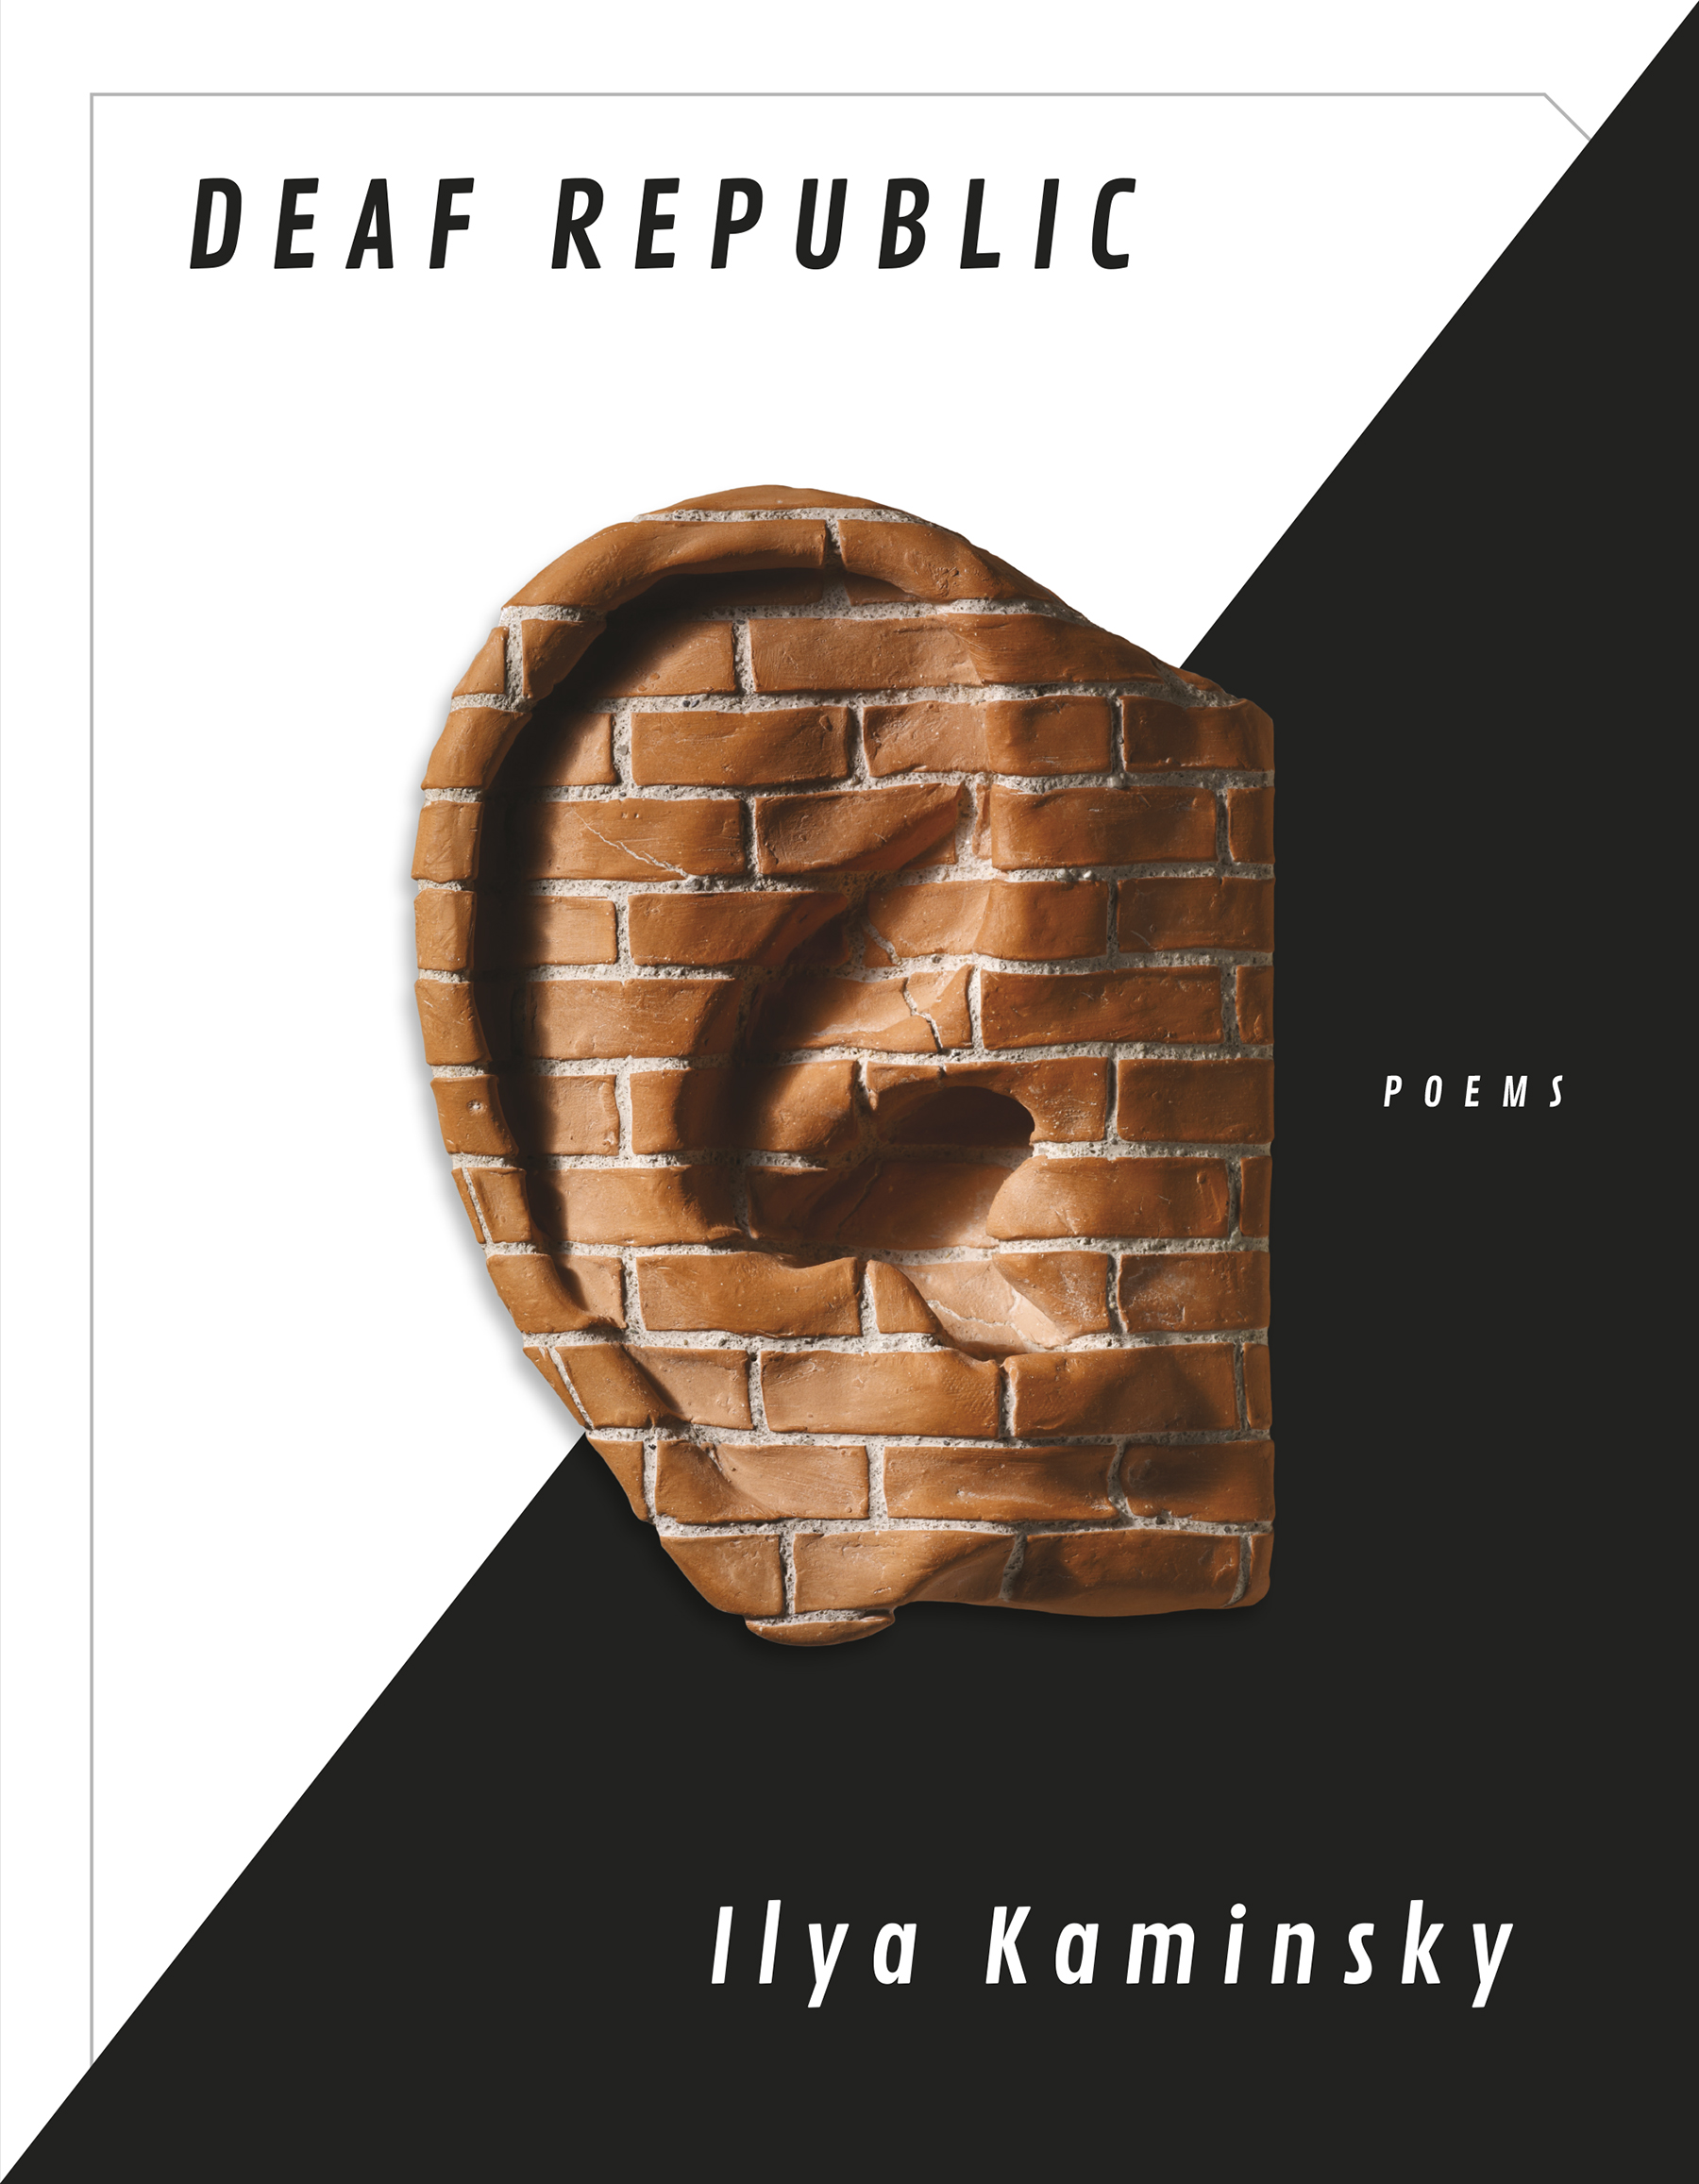 Deaf Republic by Ilya Kaminsky (Graywolf)